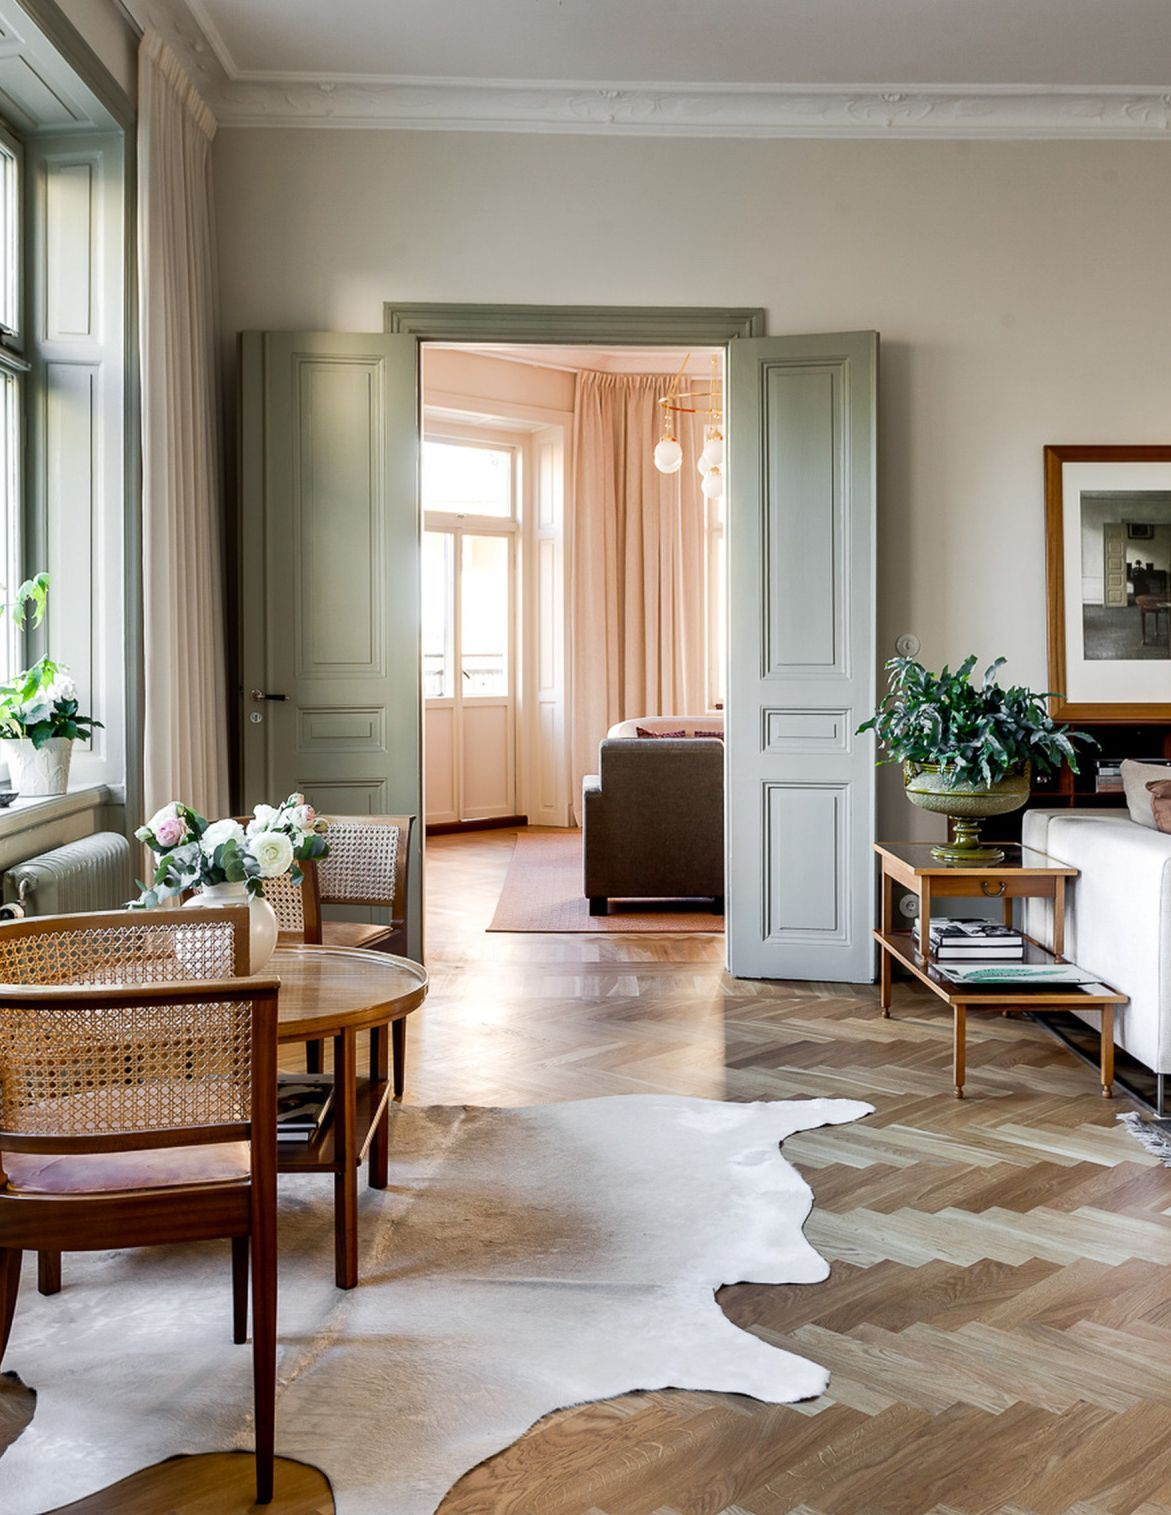 French interiors inspired living space large windows and white washed walls decor design in pinterest room interior also rh